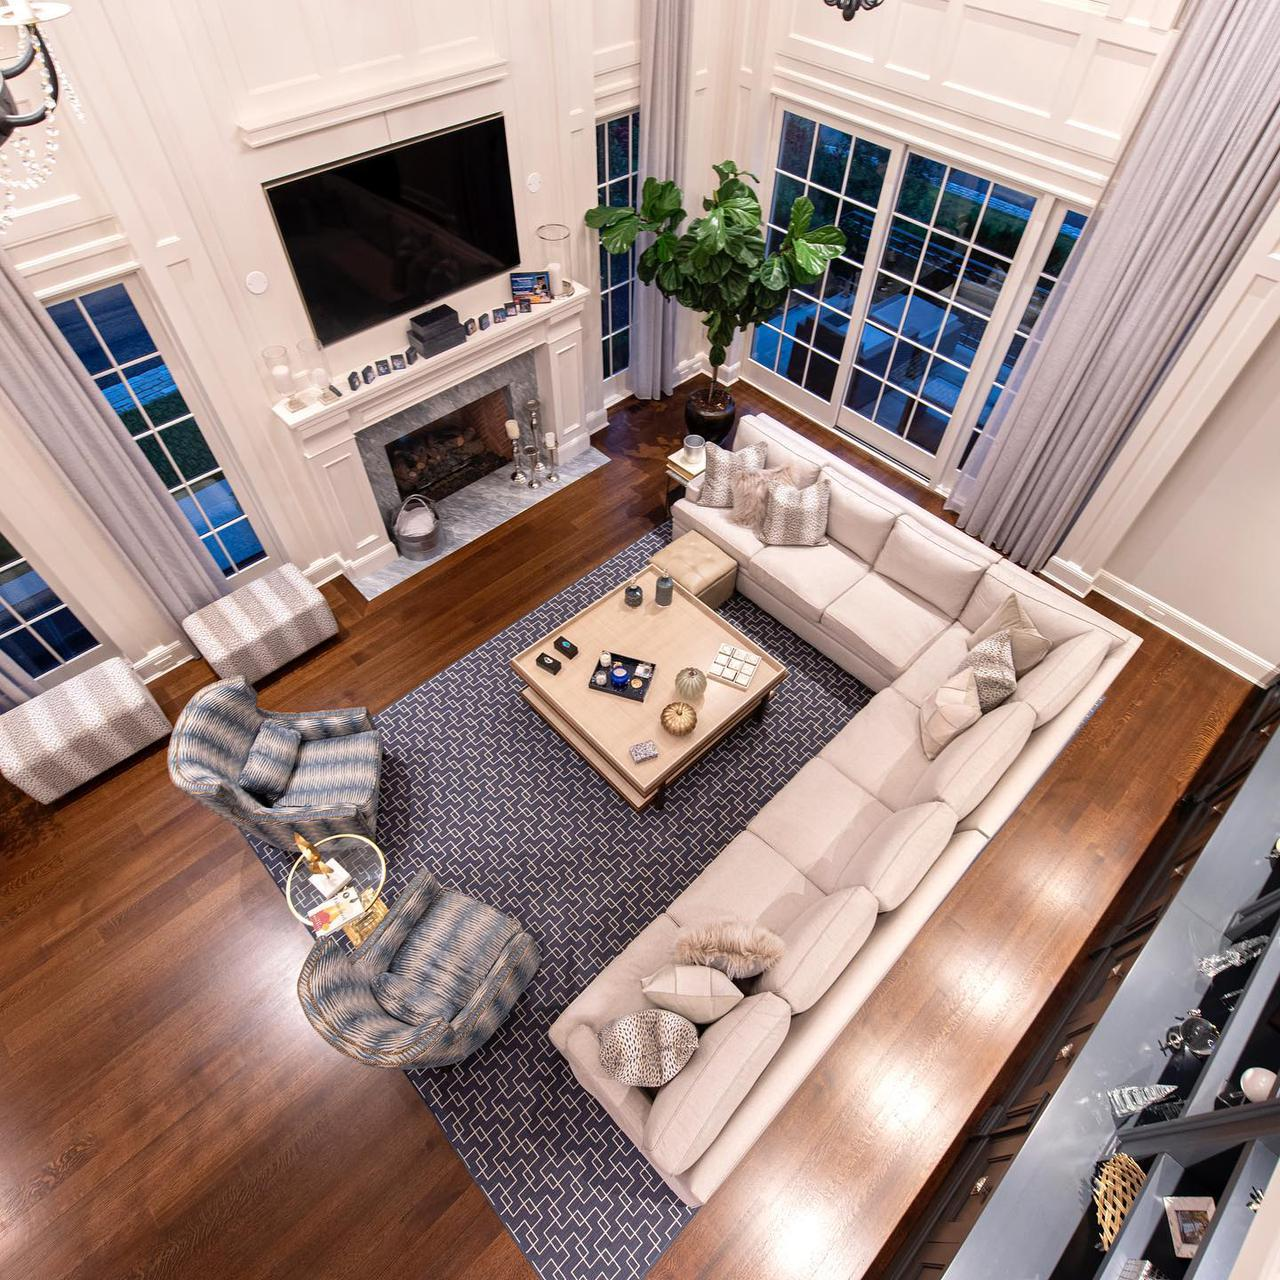 Residence in Plandome NY, family room from above